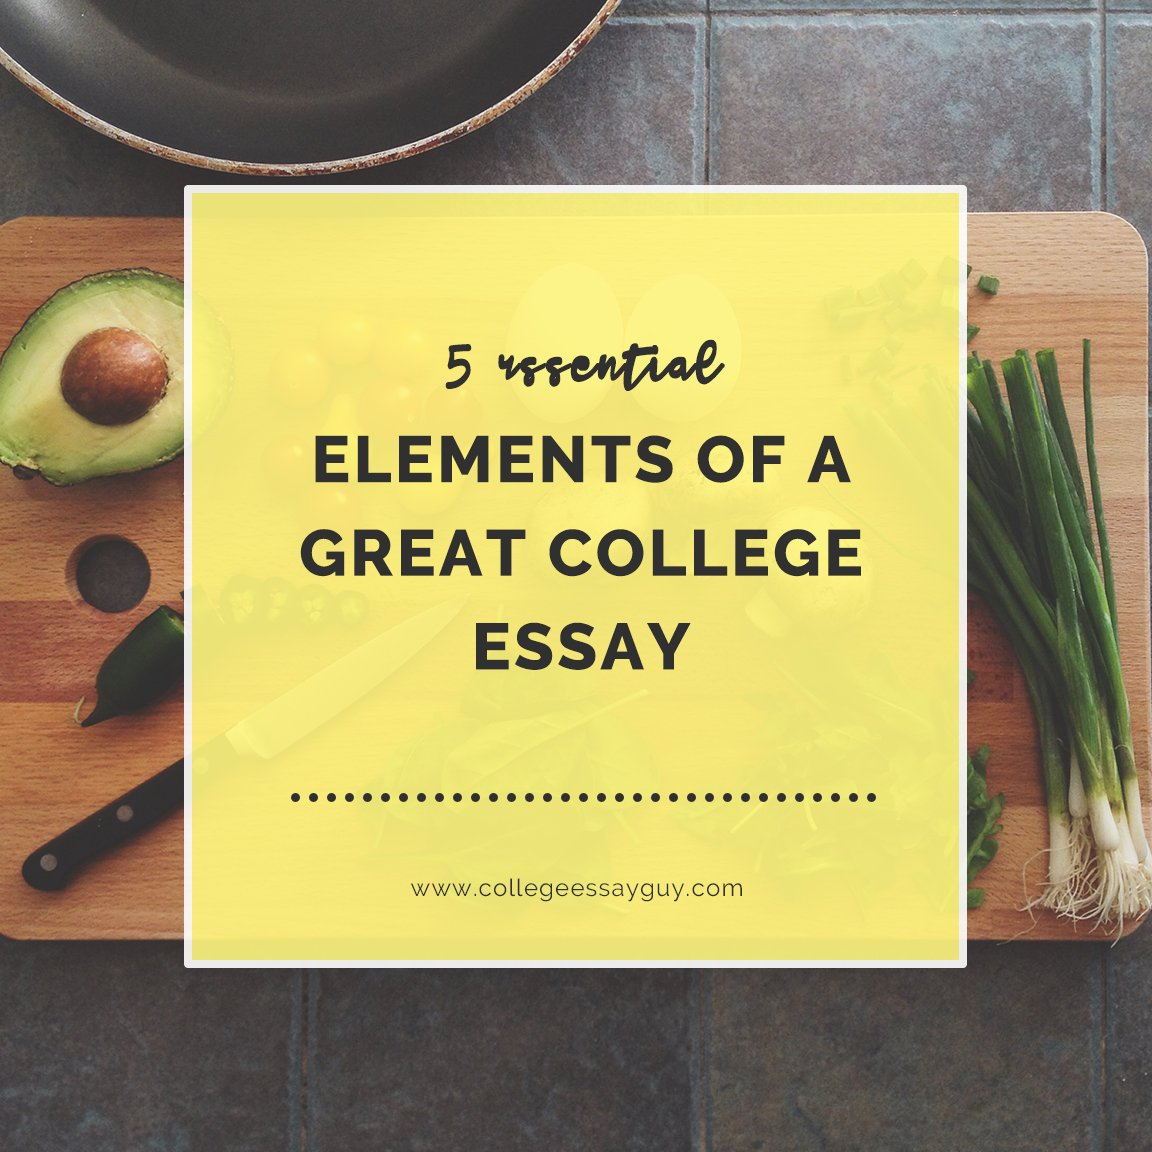 Take a look at this excellent essay that illustrates five essential principles of good essay writing. Note how the writer incorporates a wide range of details and images through one particular lens: a scrapbook. goo.gl/n381PR